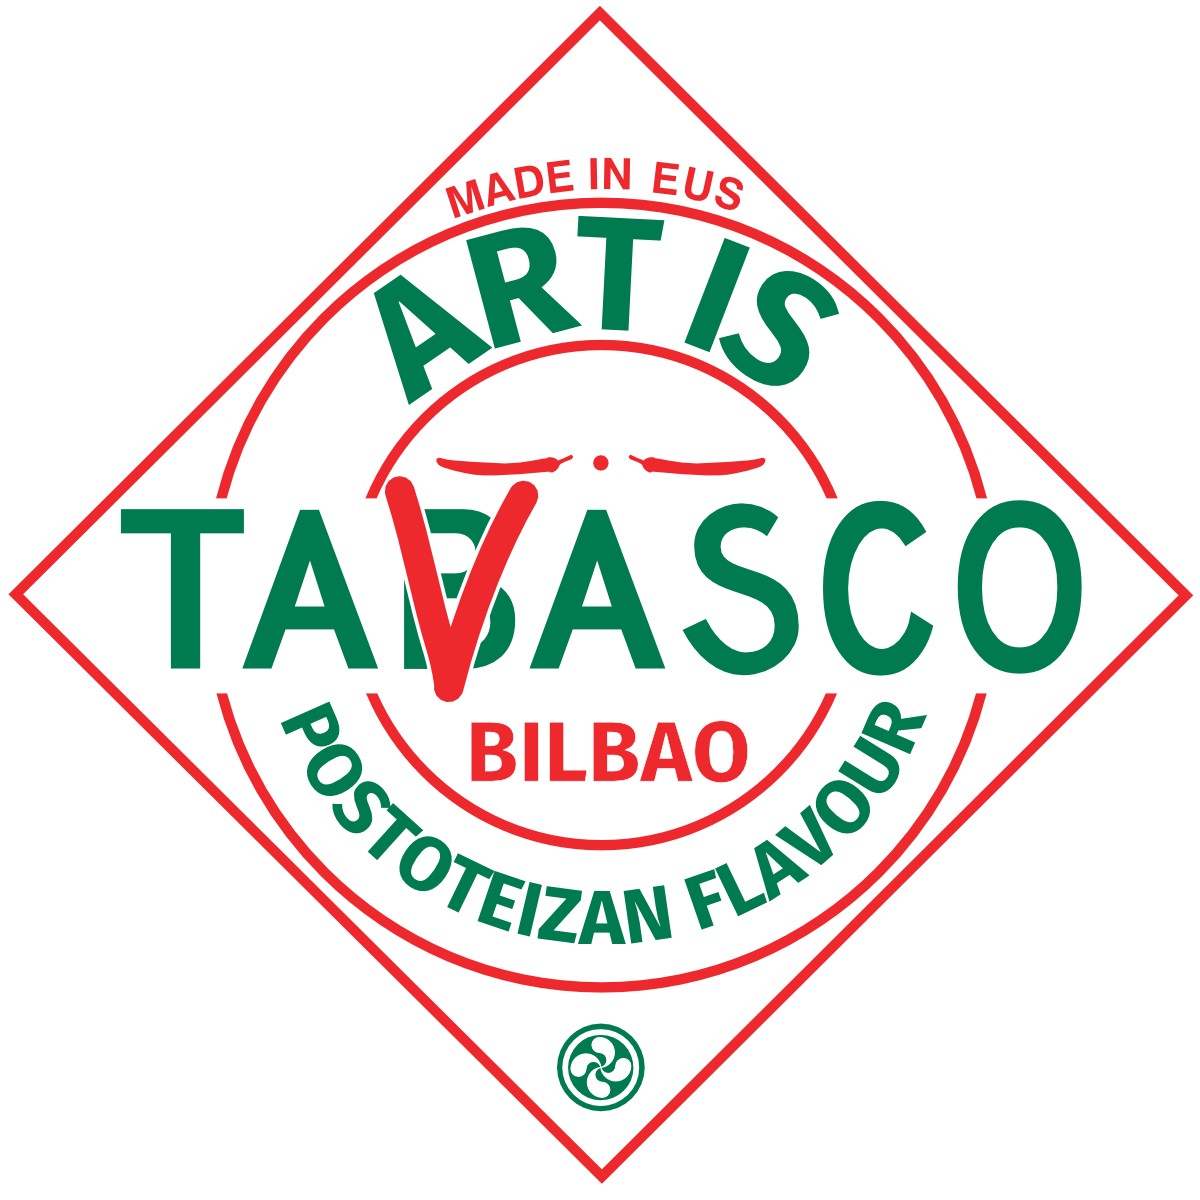 ART IS TABASCO